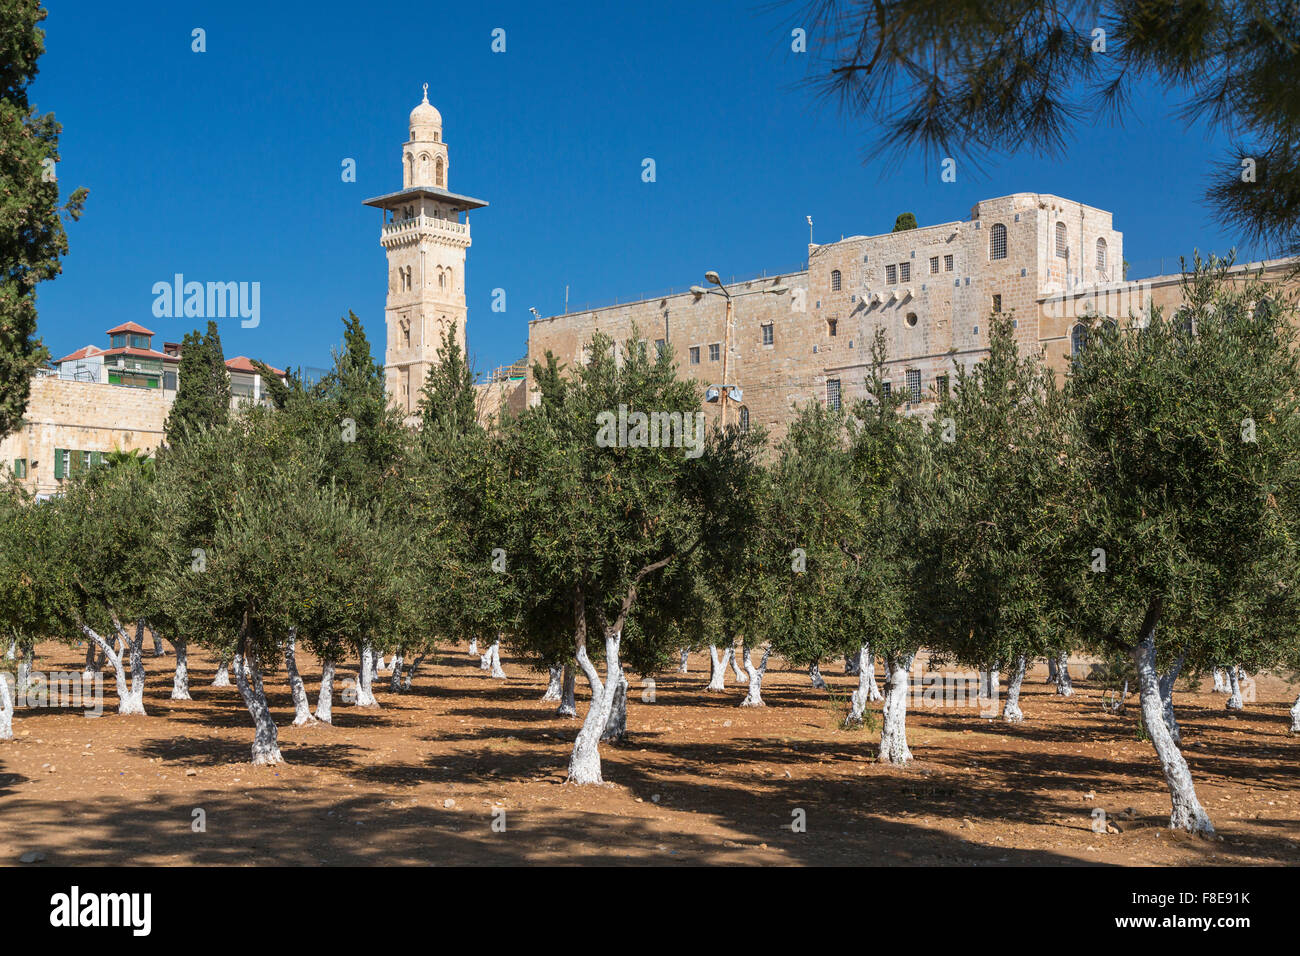 An olive grove on the Temple Mount in Jerusalem, Israel, Middle East. - Stock Image